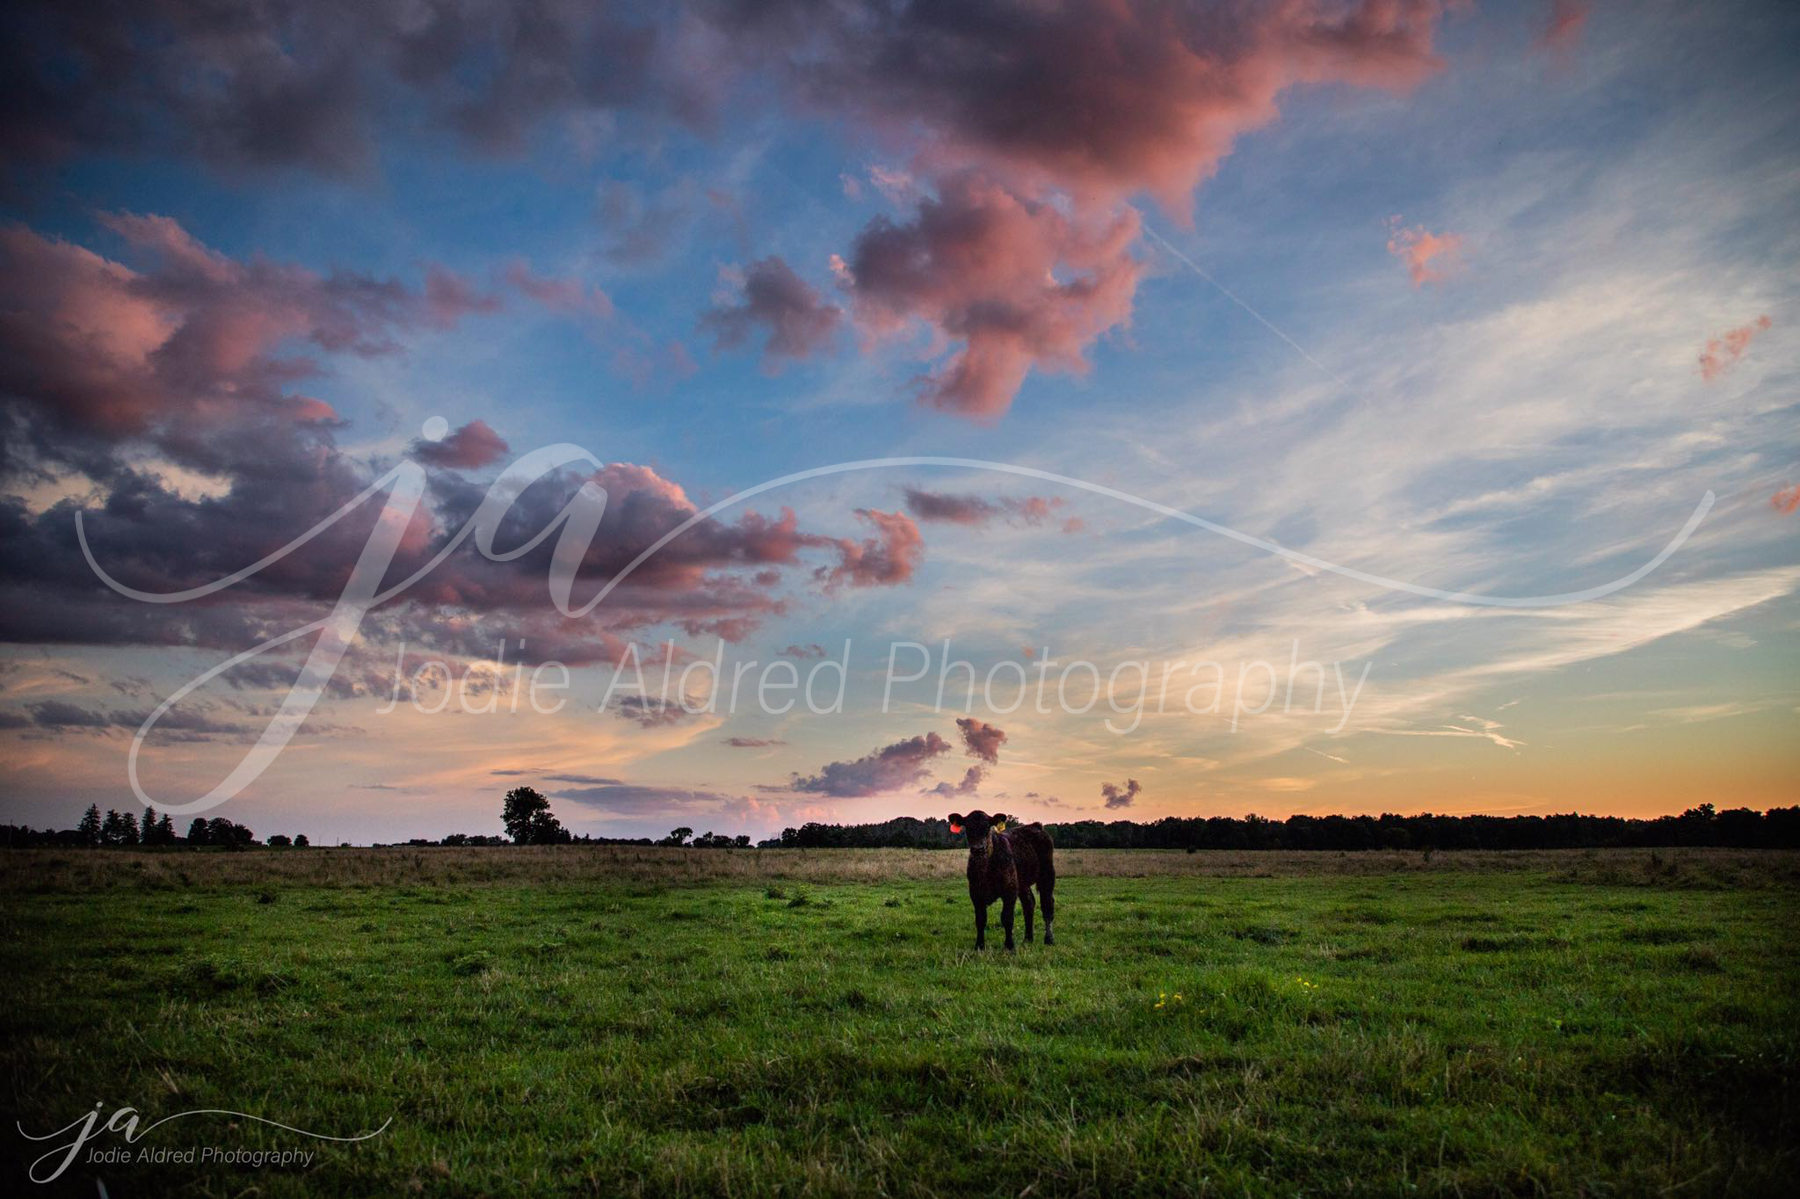 Jodie-Aldred-Photography-Ontario-Agriculture-Photographer-Farm-Sunset-Cattle-calves-cow-calf-sky-outdoors.jpg